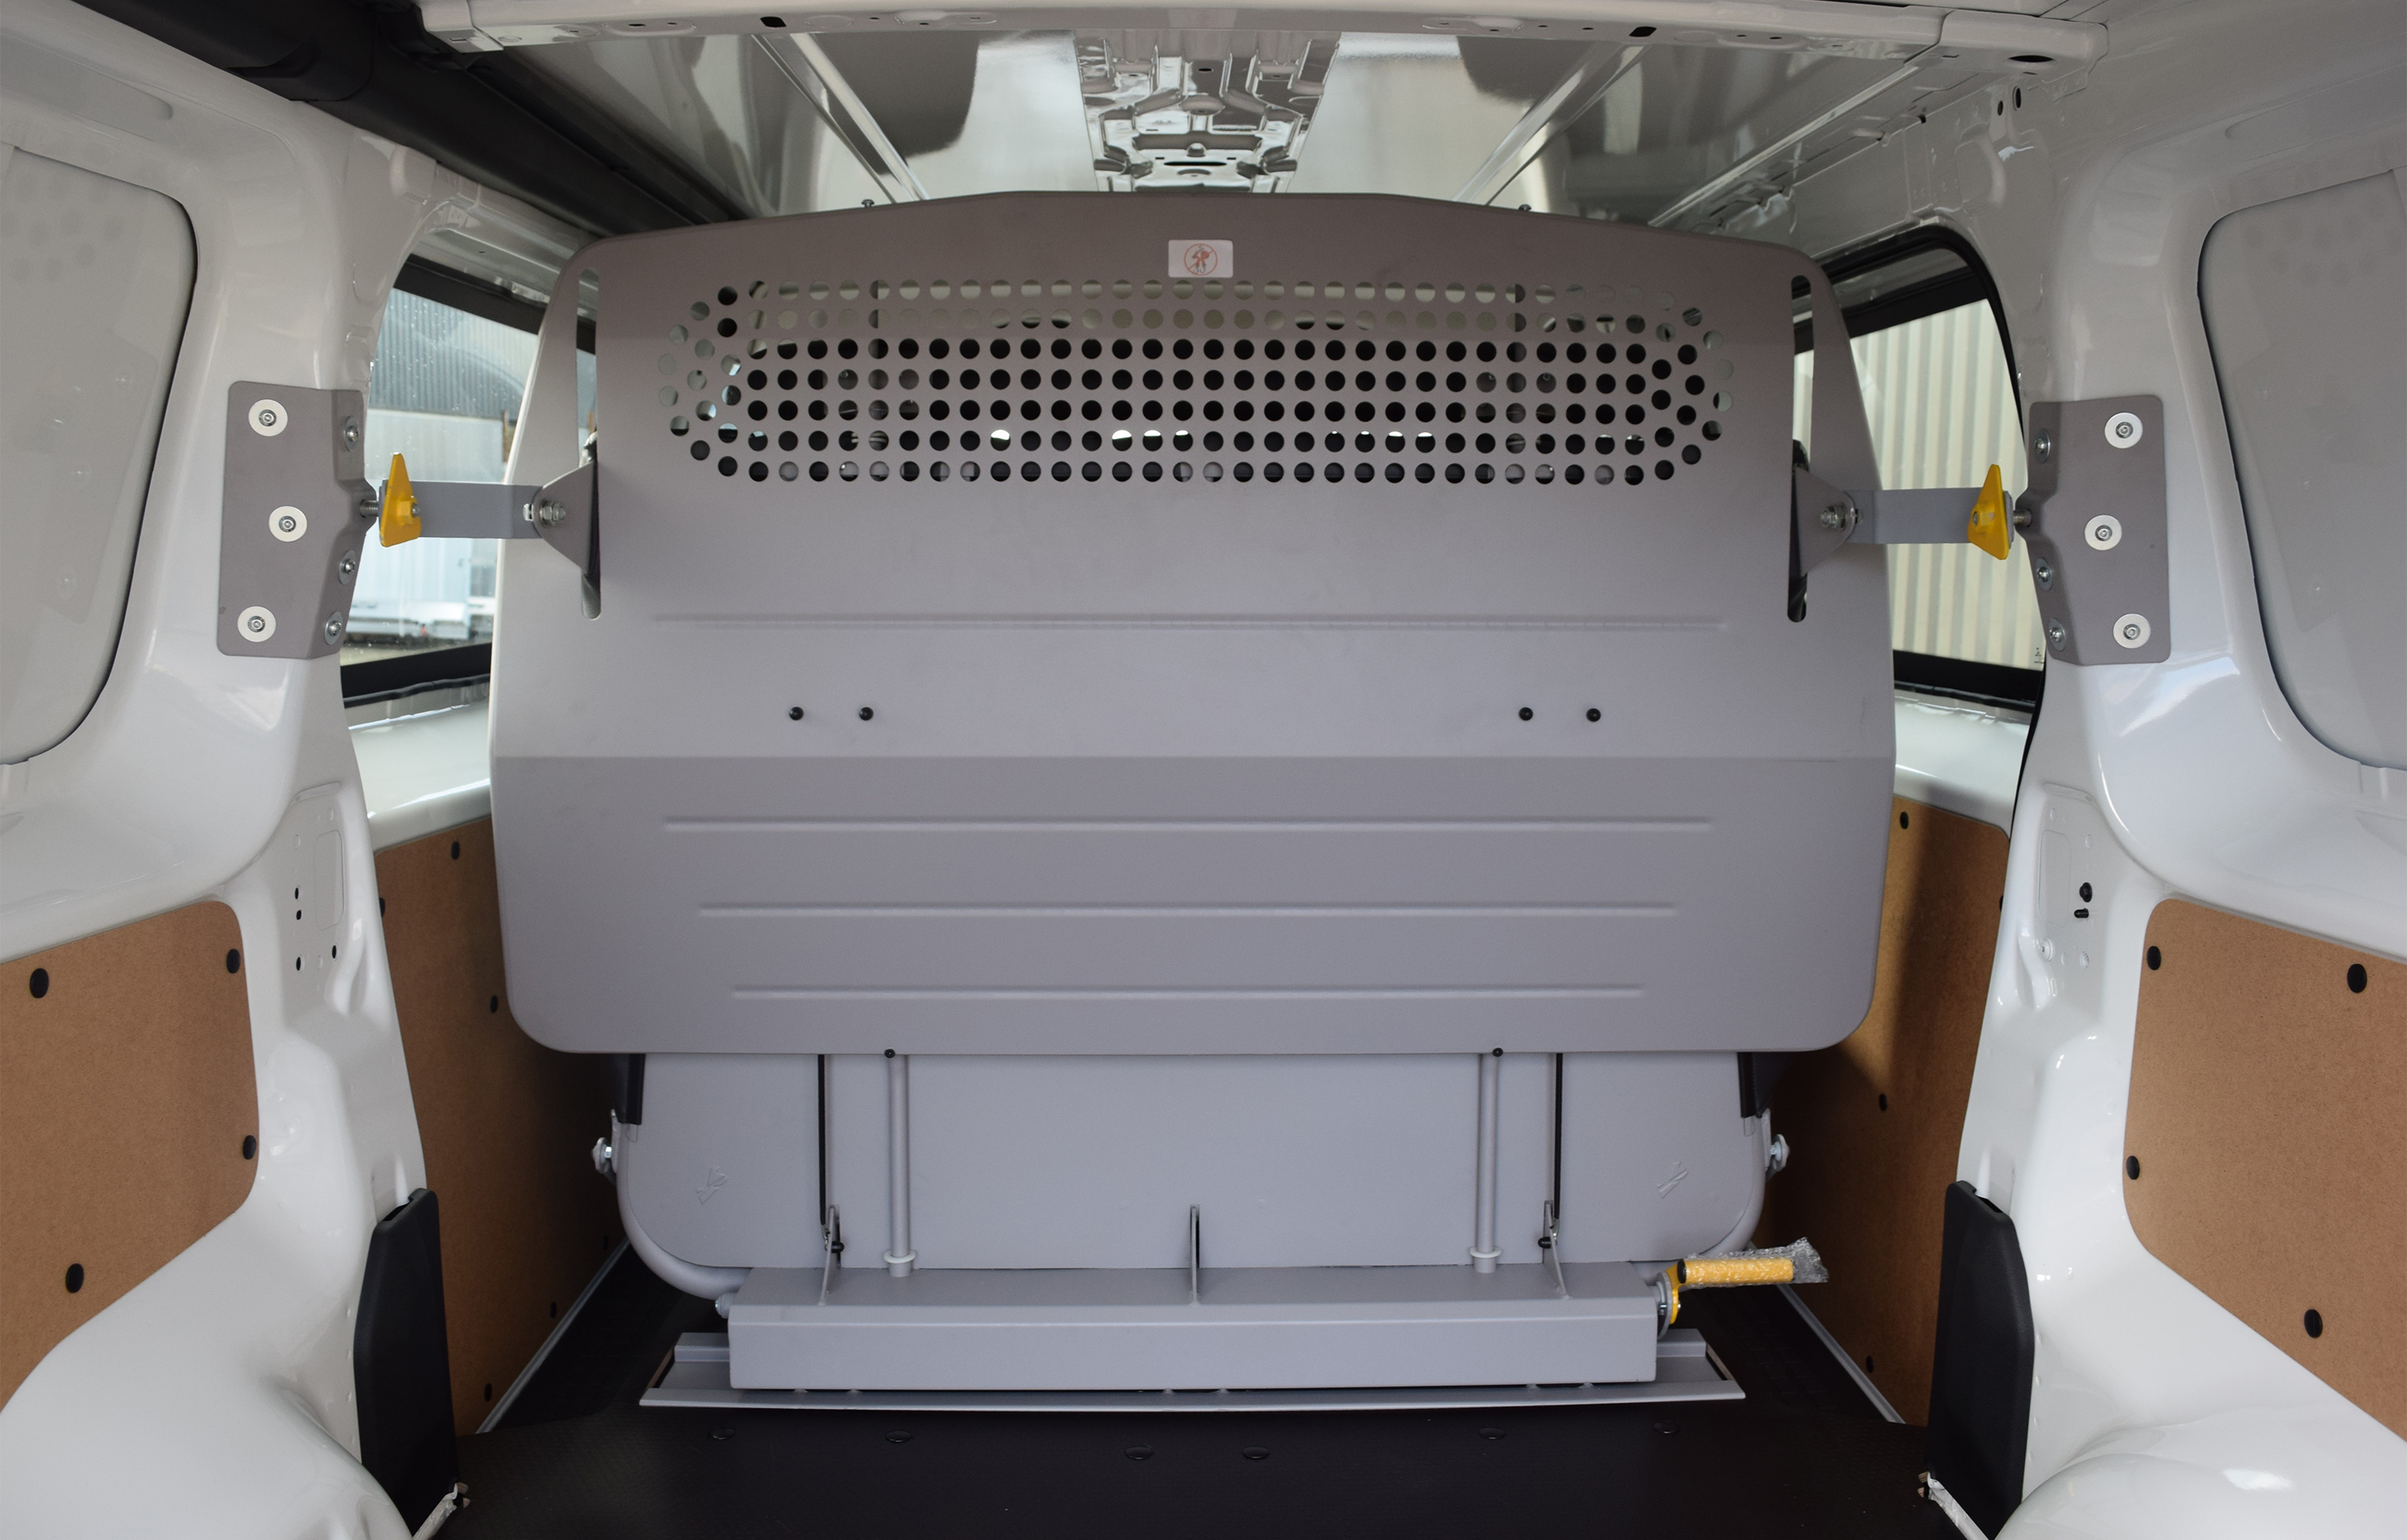 Transport utilitaire - 7163454 - Cabine approfondie